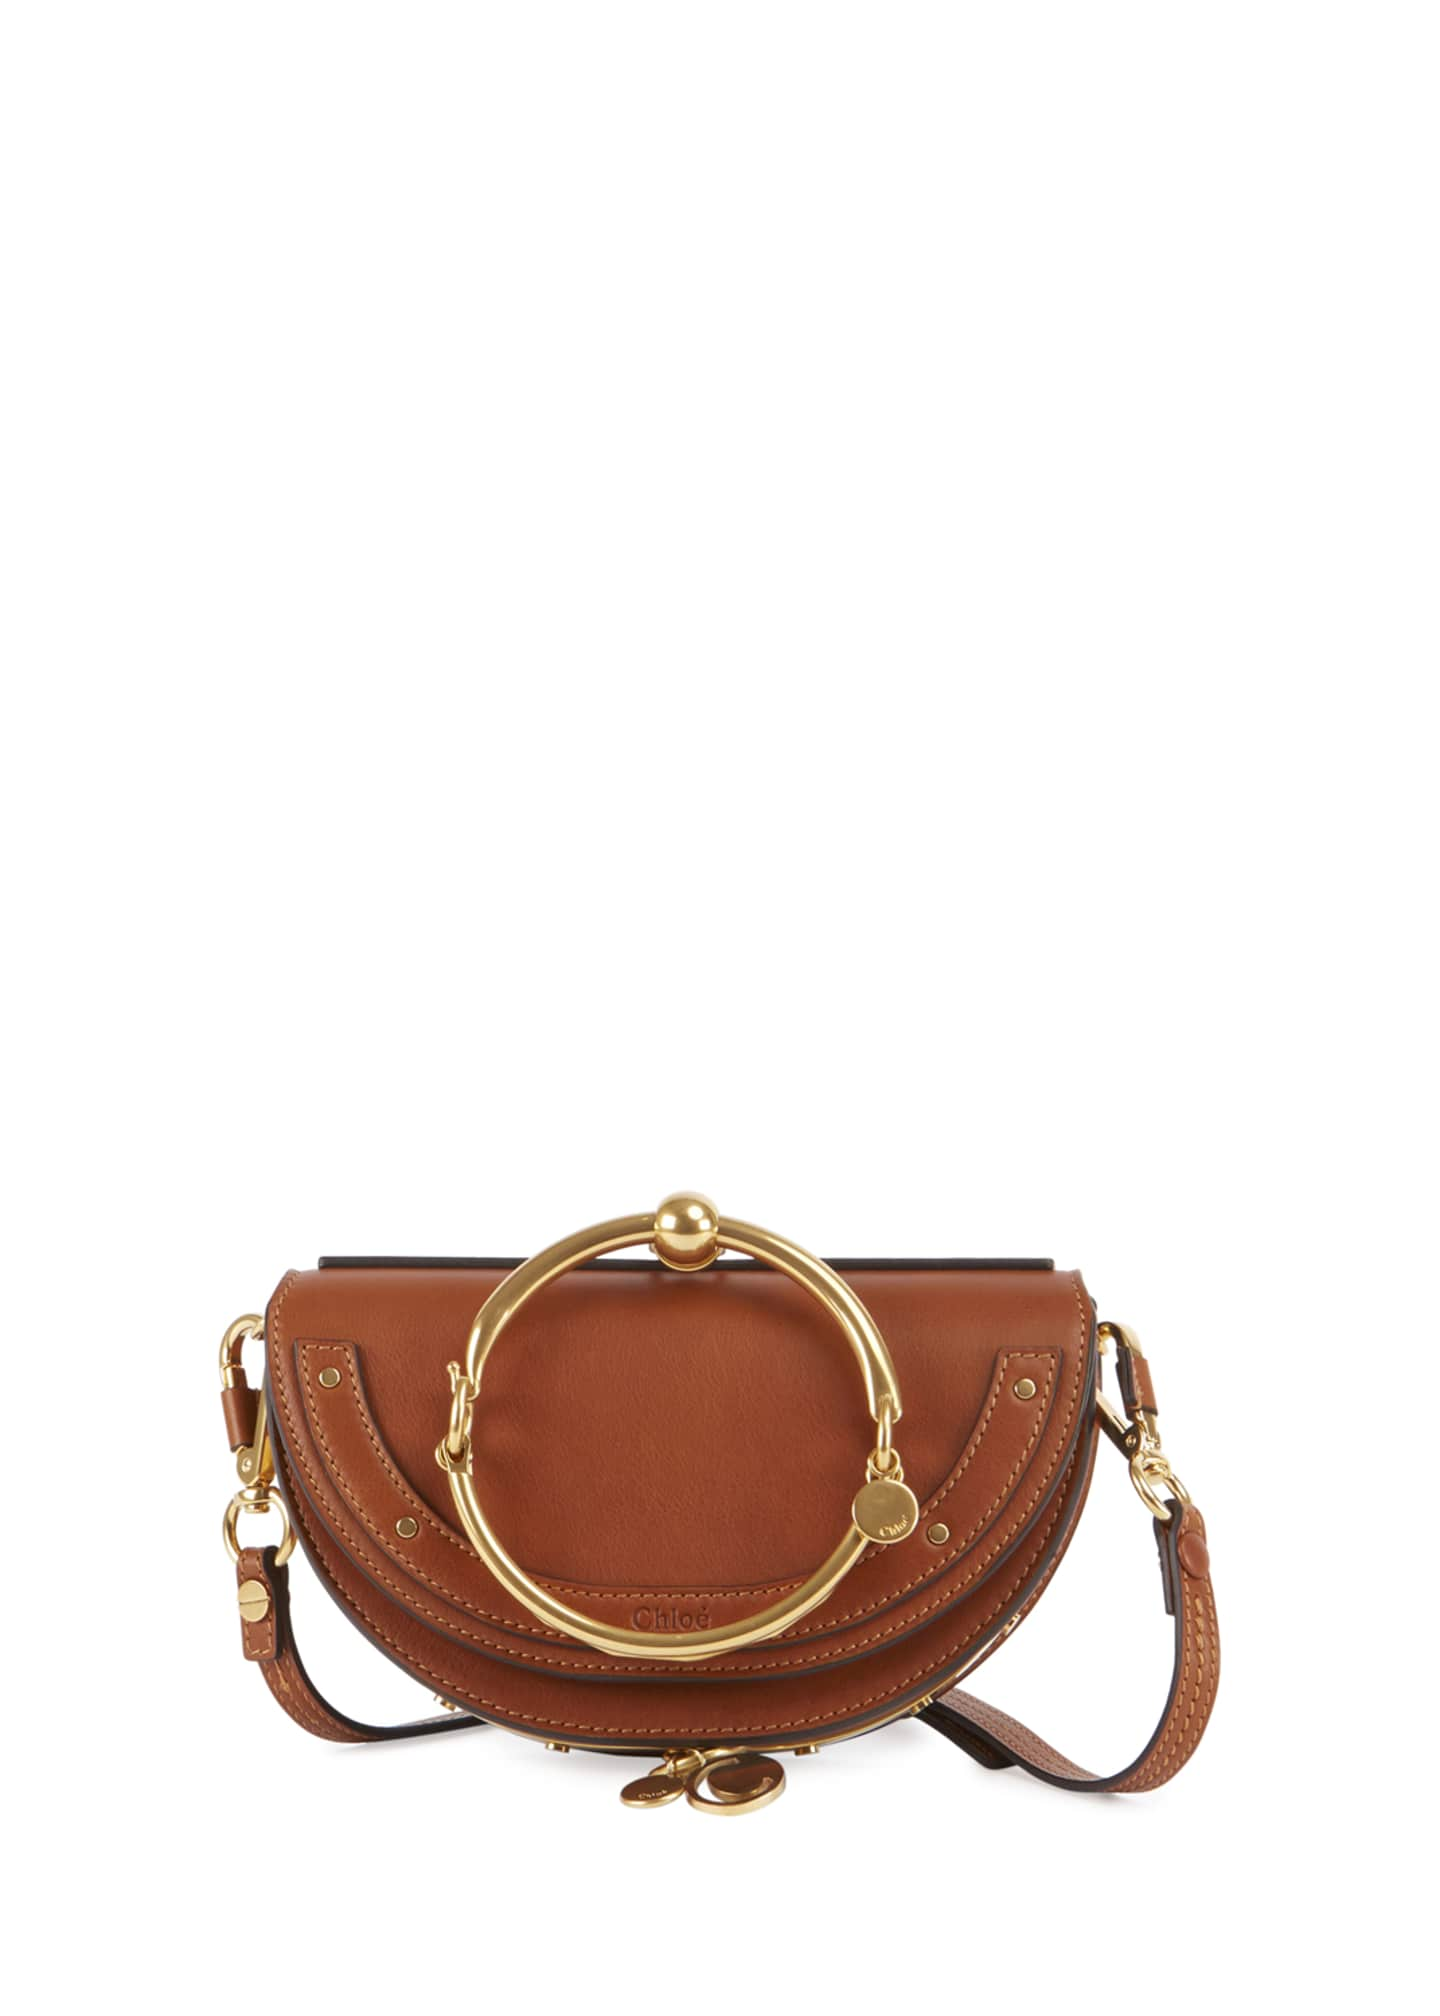 Chloe Nile Small Bracelet Minaudiere Bag